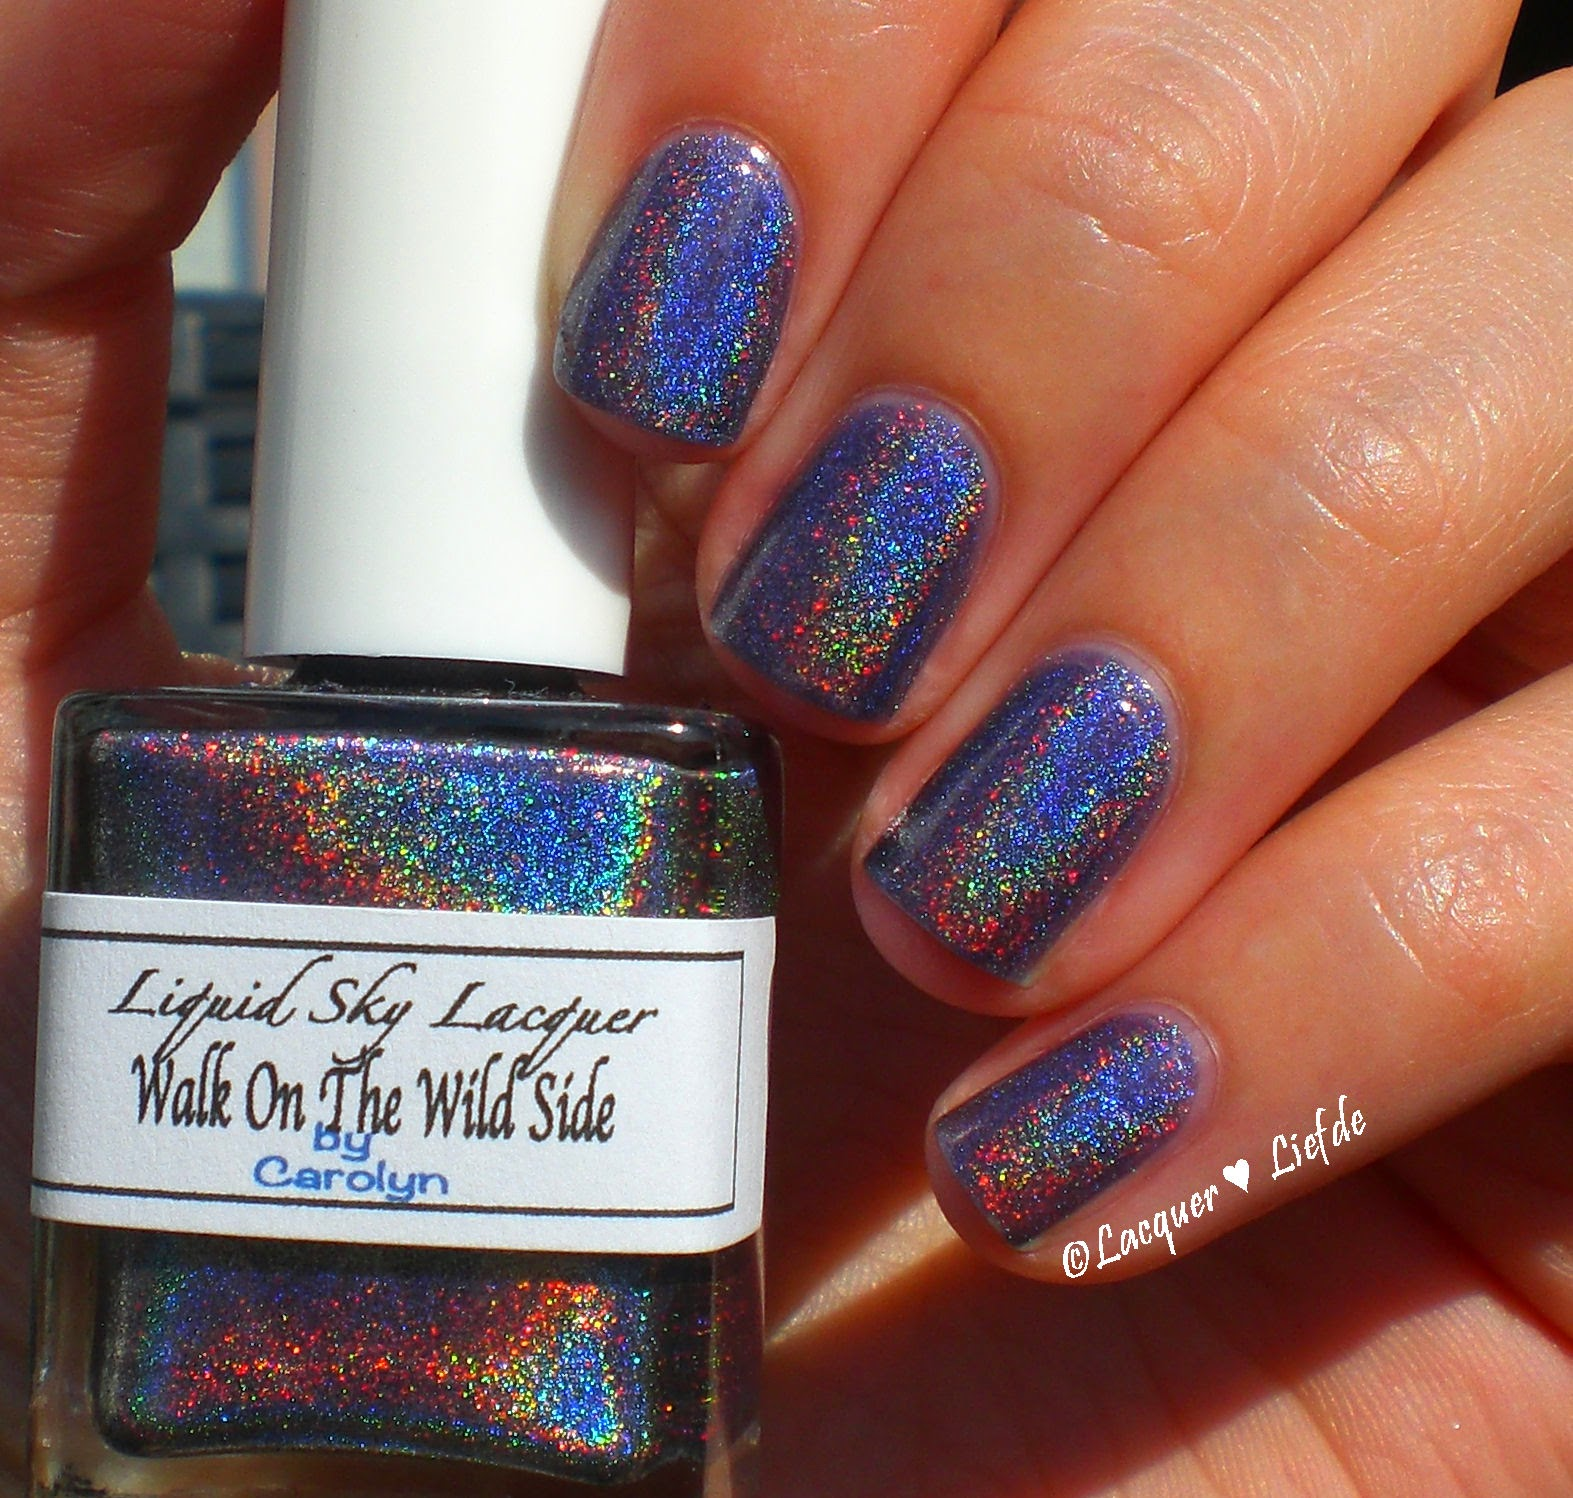 Walk on the wilde side Liquid Sky Lacquer